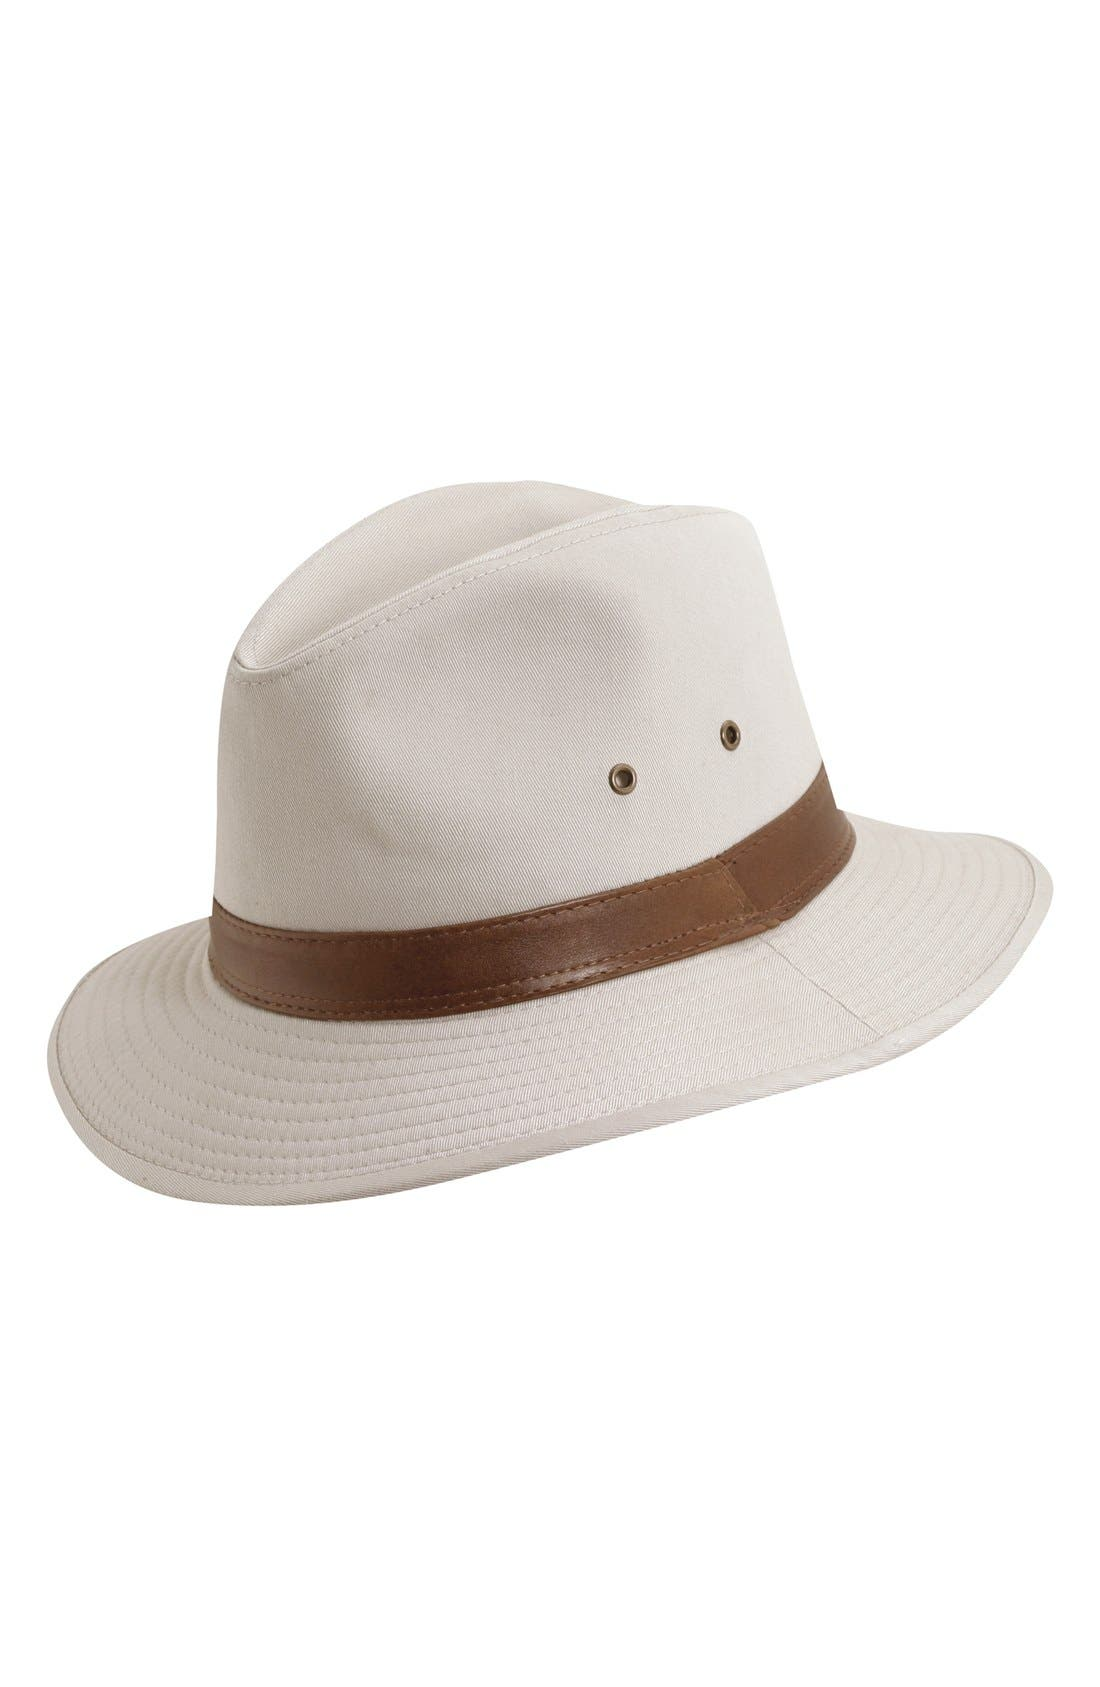 DORFMAN PACIFIC Safari Fedora